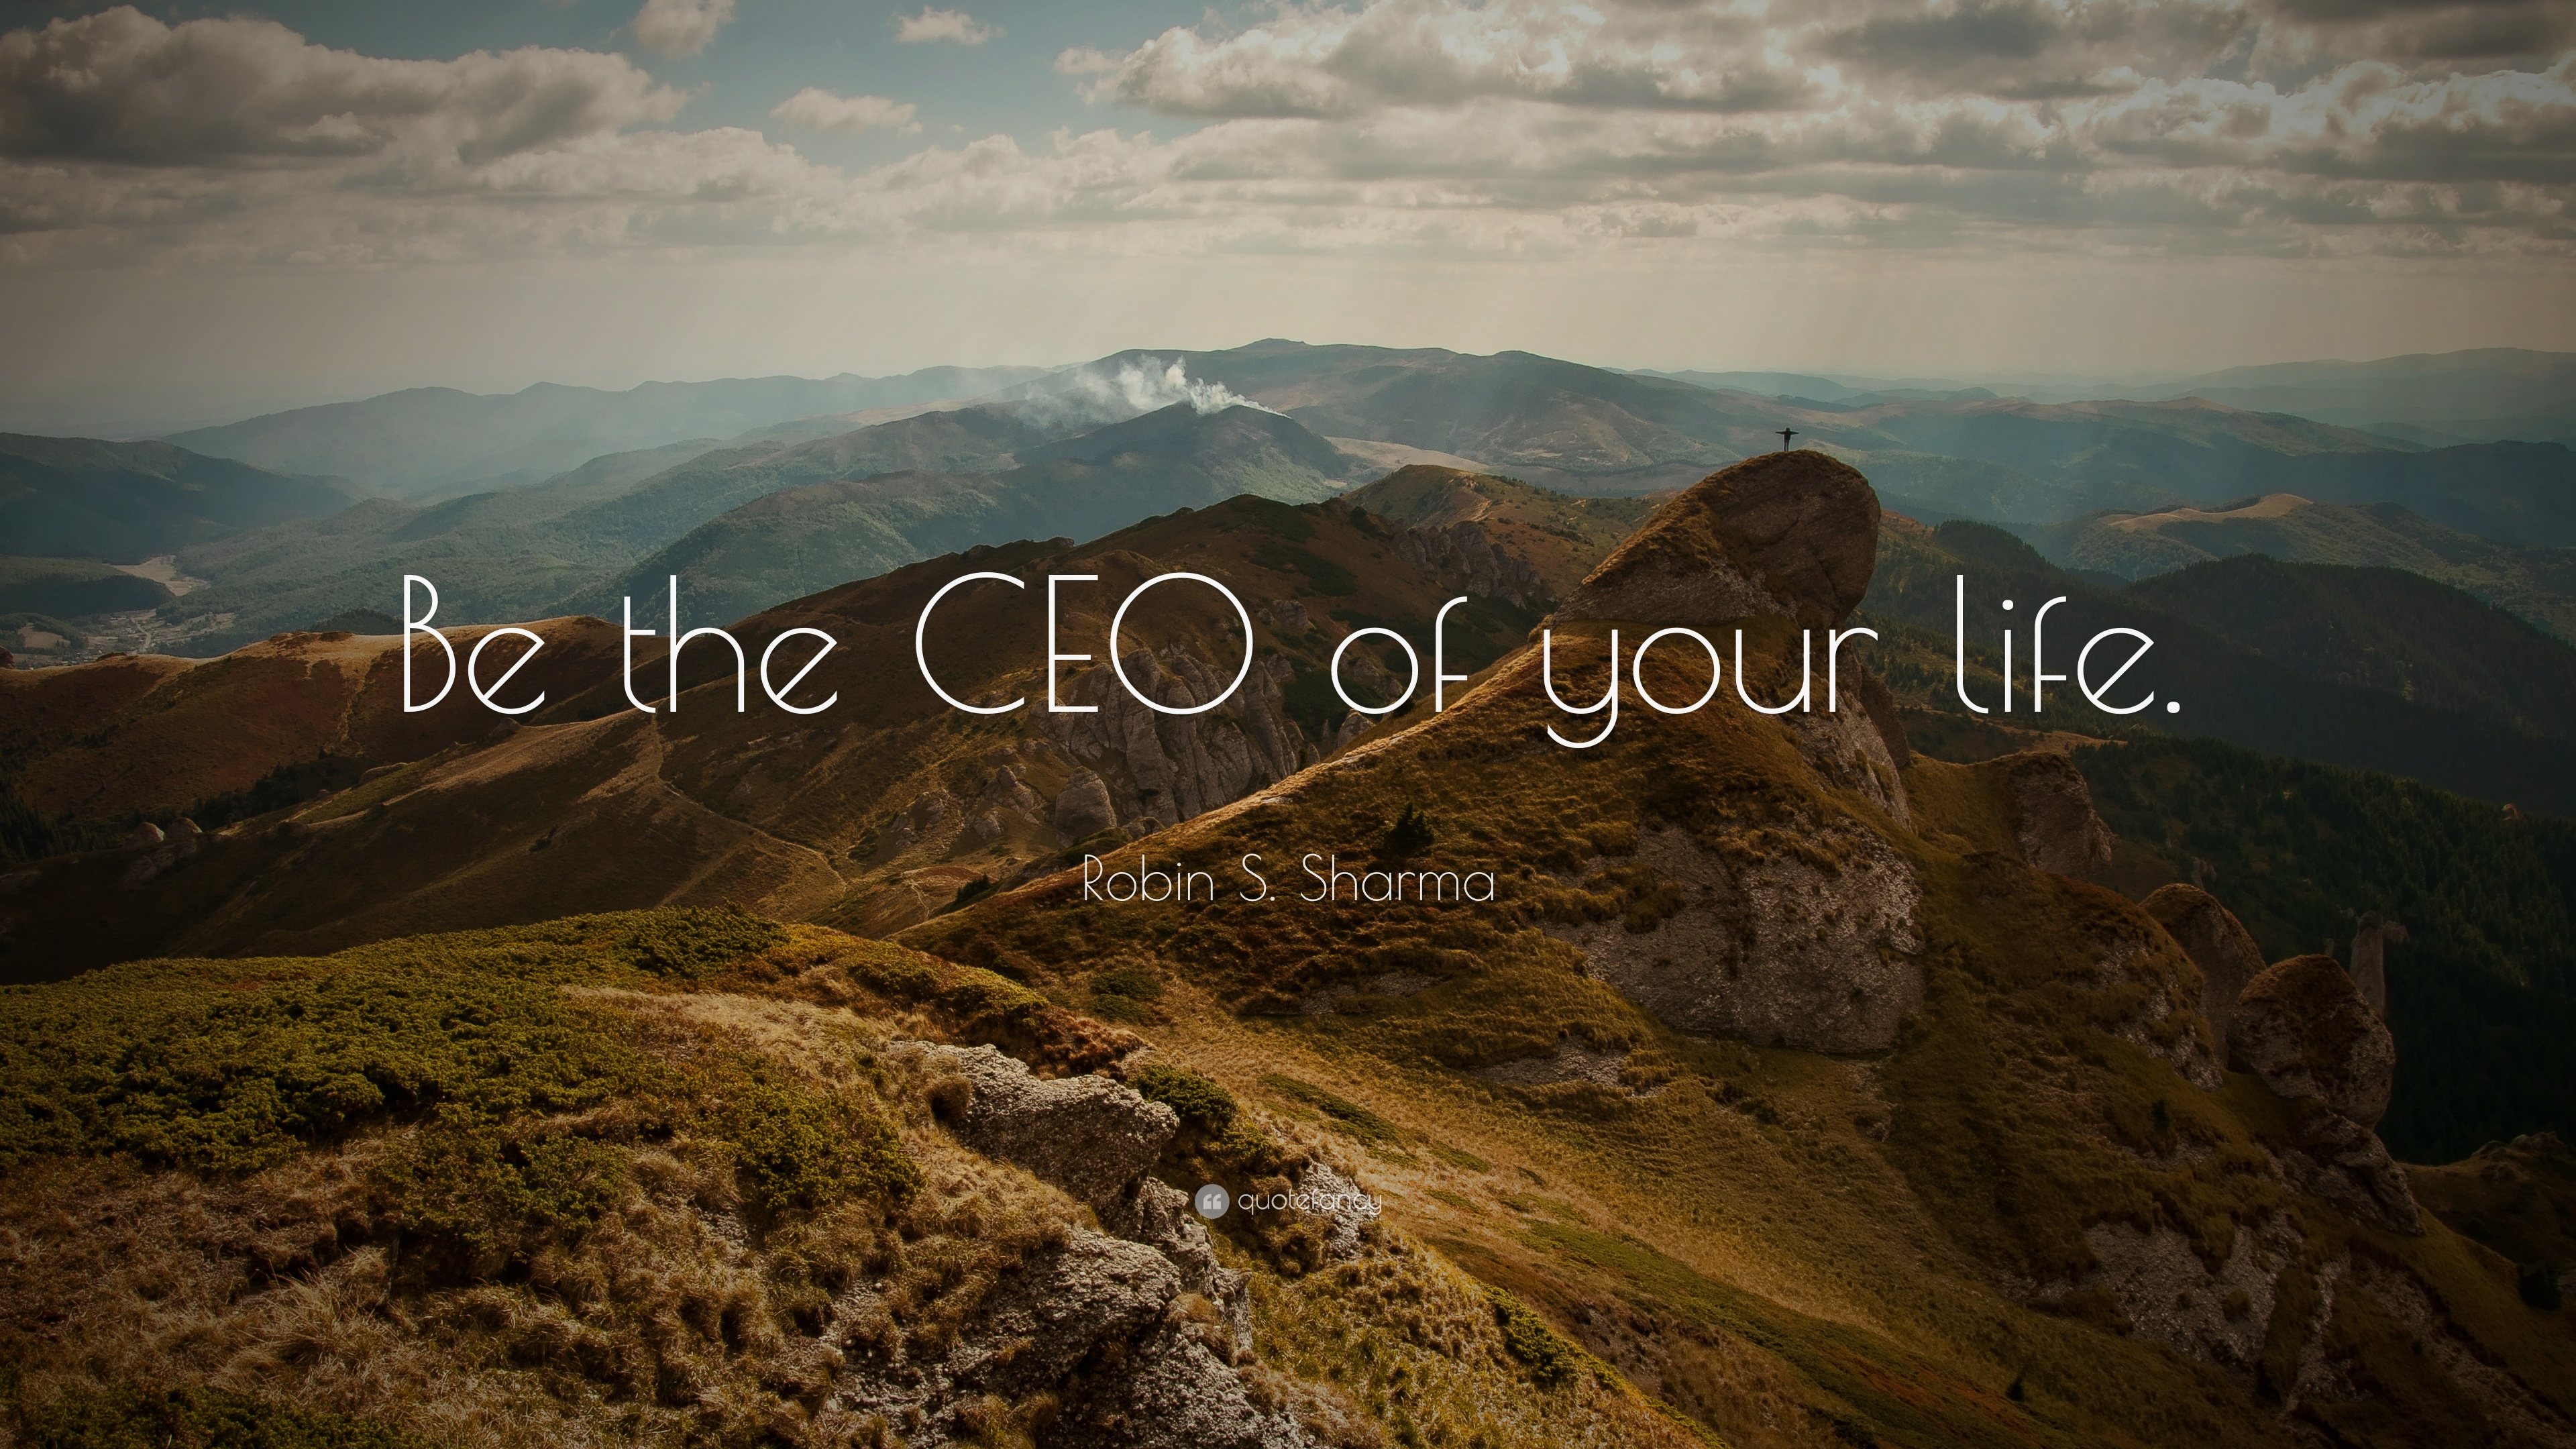 Robin S Sharma Quote Be The Ceo Of Your Life 22